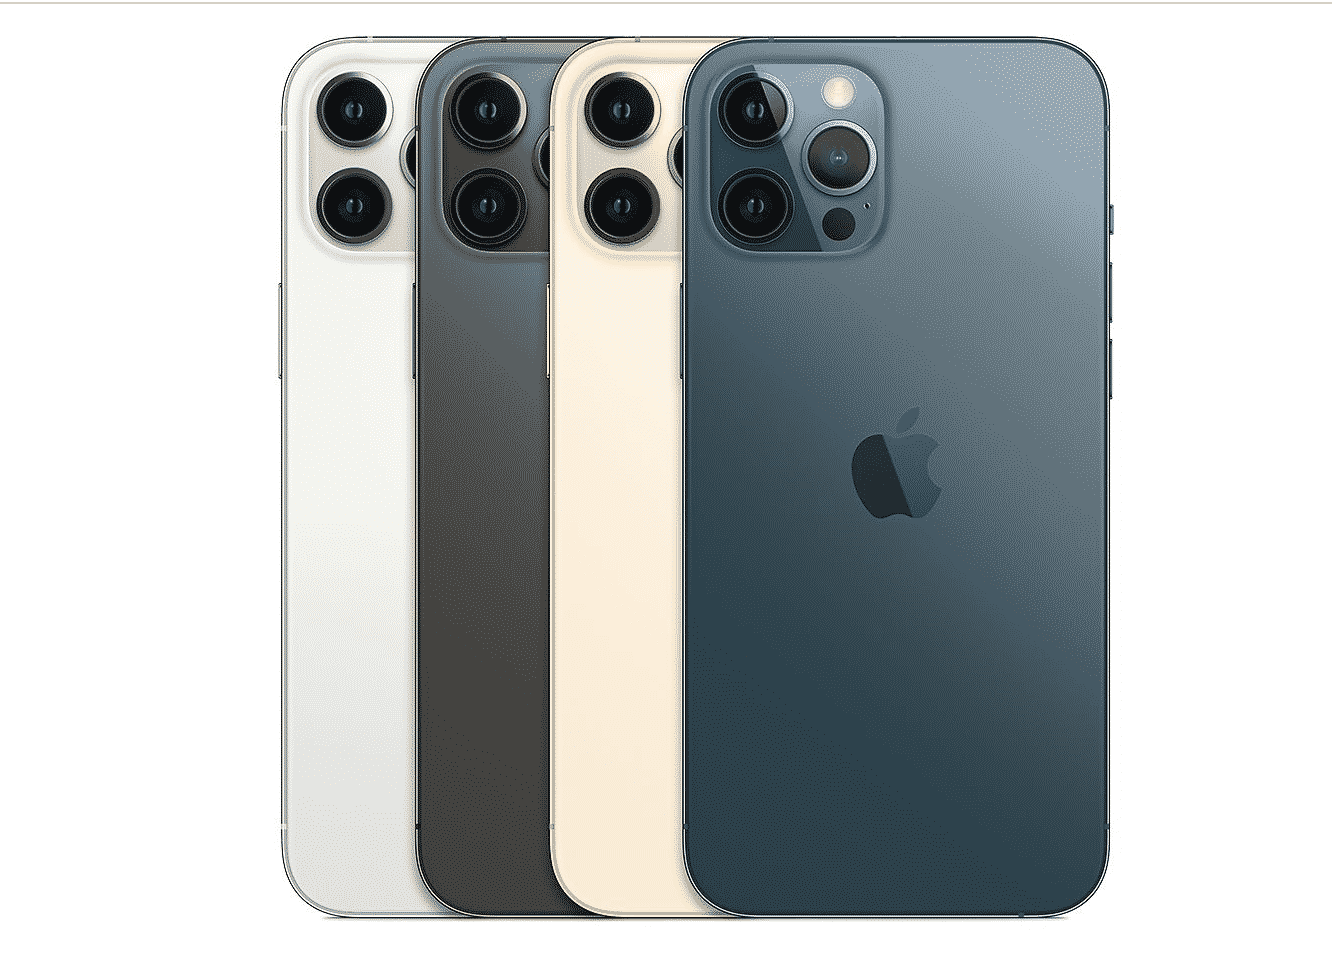 iPhone 12 Pro Max in 4 different colors